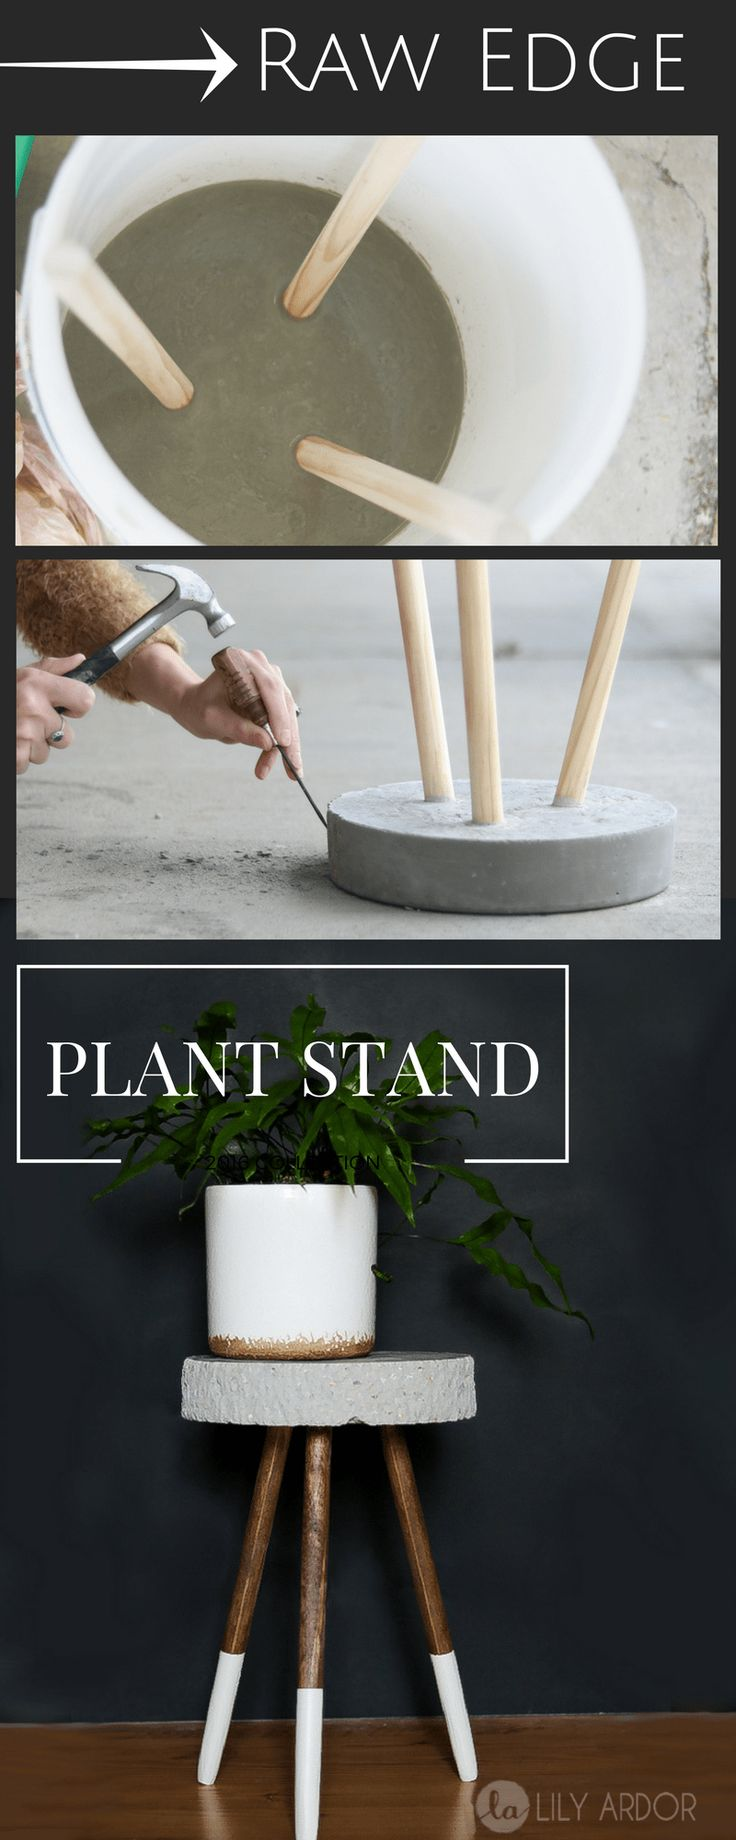 Raw Edge Concrete Plant Stand — DIY —>> TUTORIAL